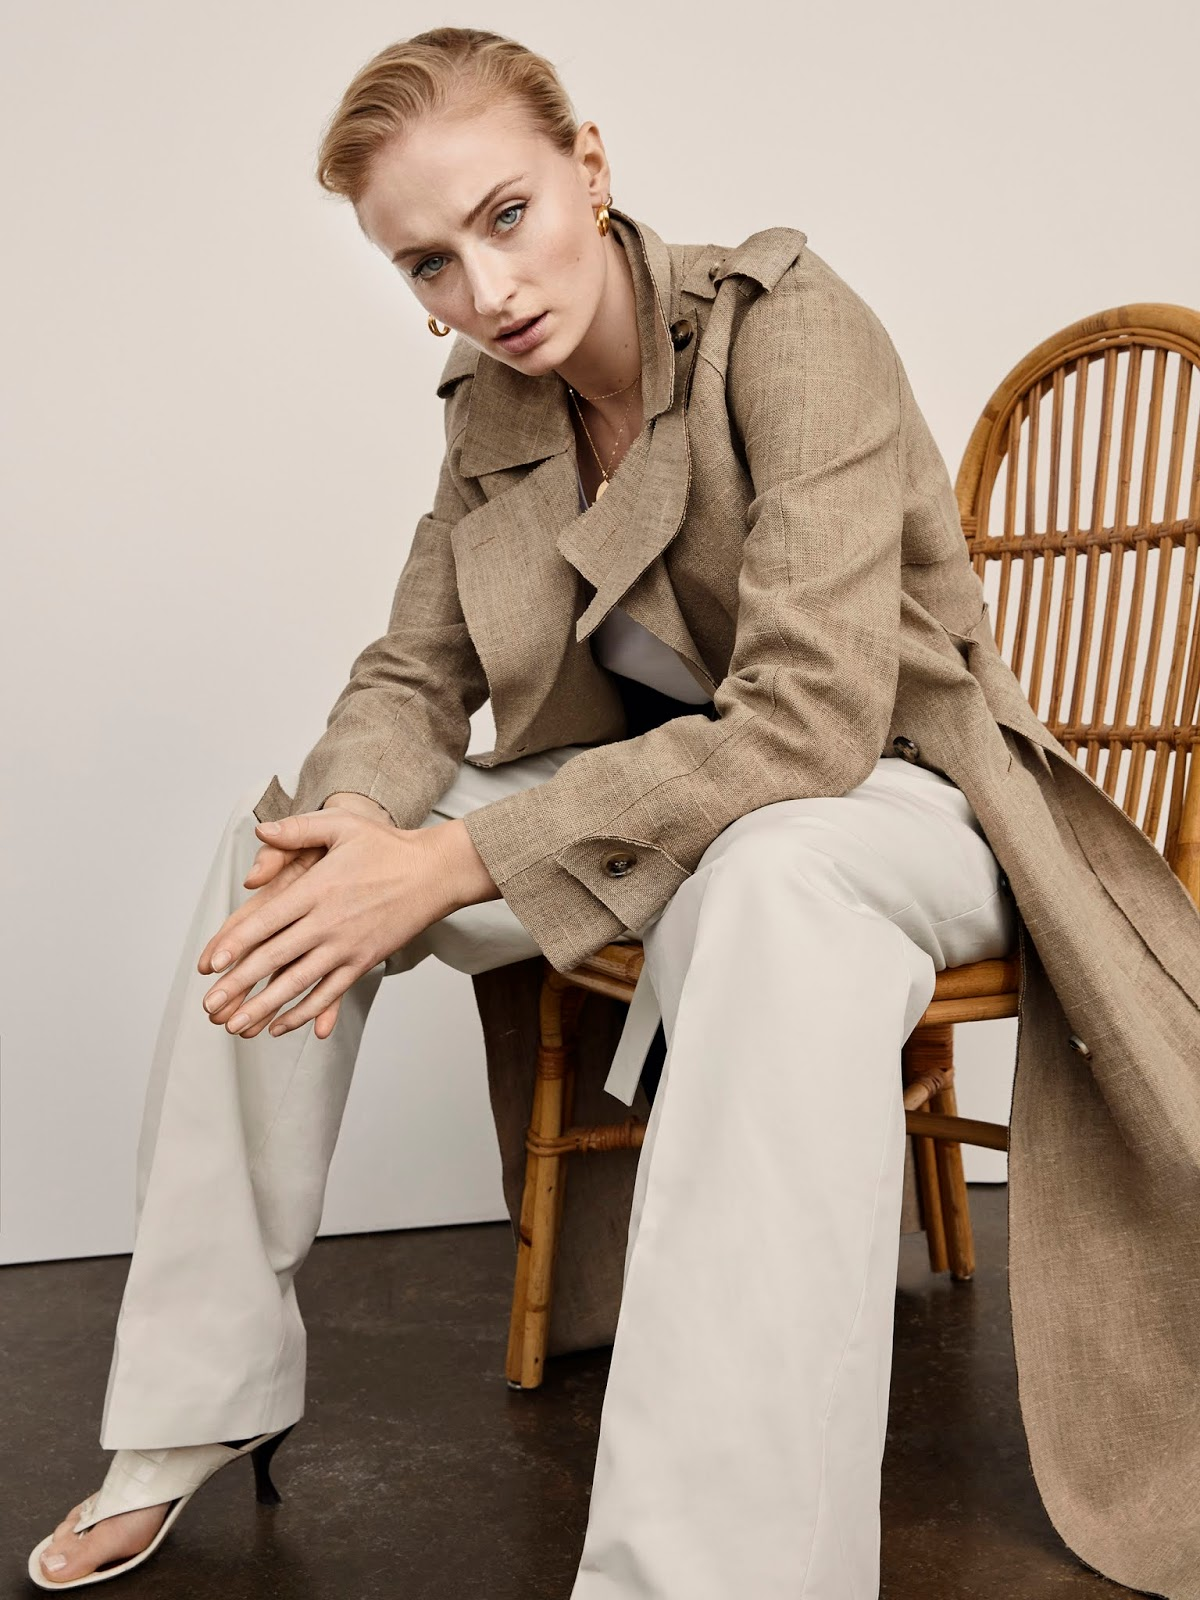 Yelena Yemchuk captures Sophie wearing Bottega Veneta coat, ATM Anthony tank and Thomas Melillo pants.